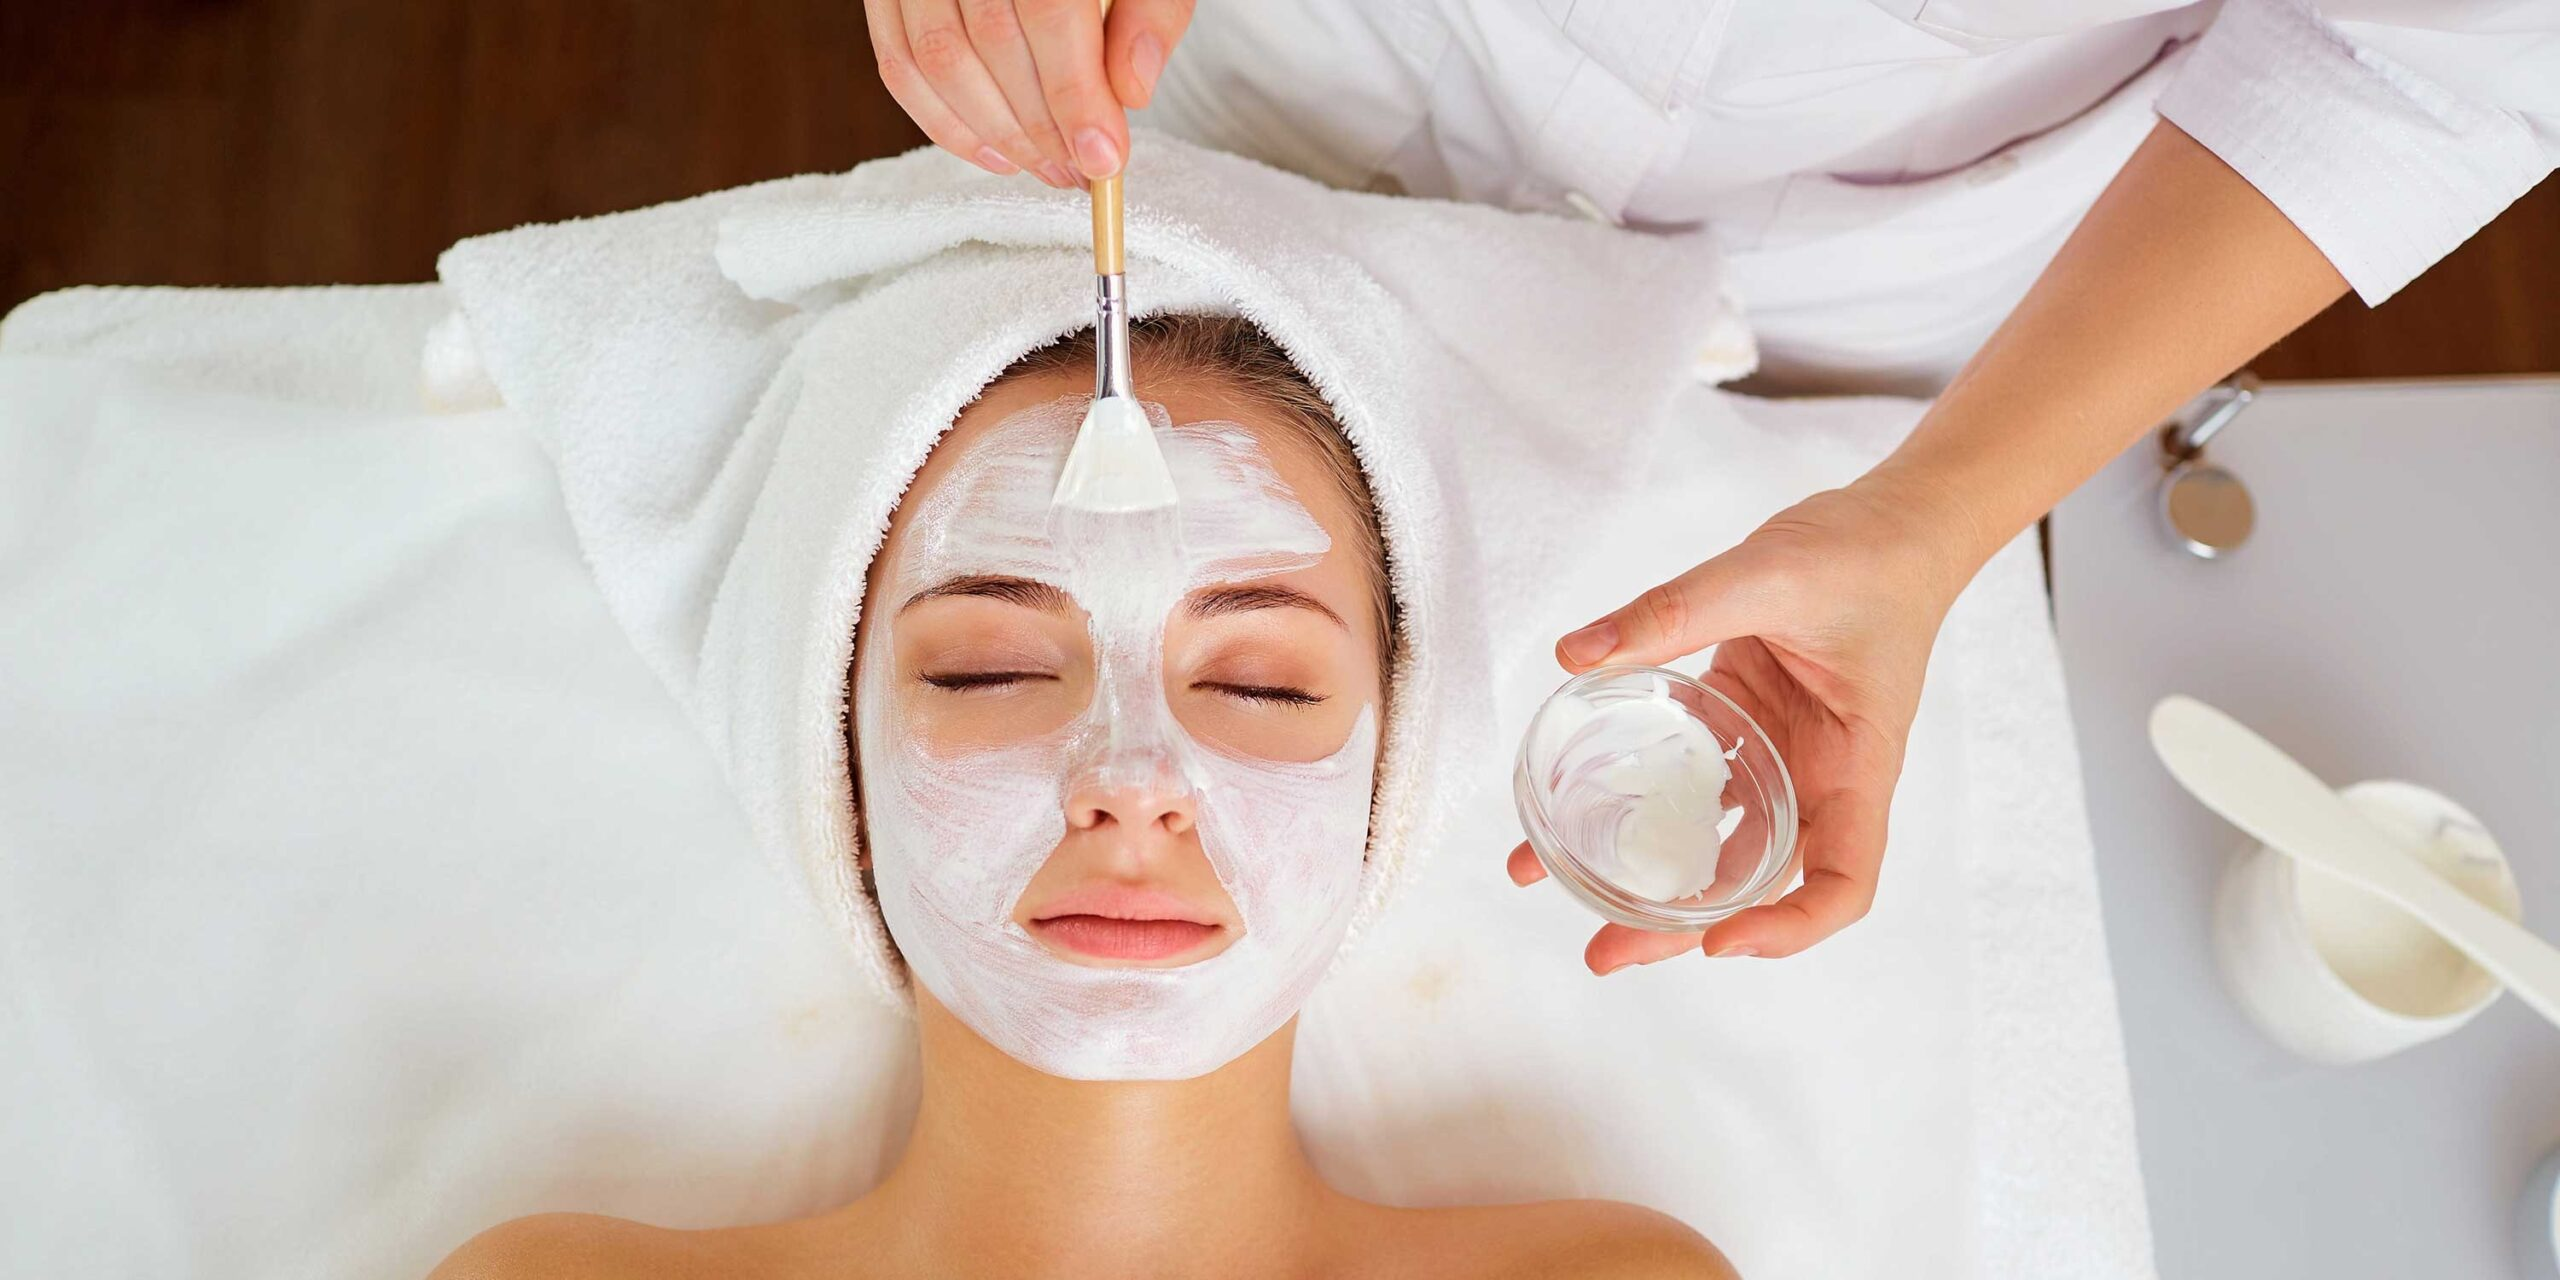 Skinovage PX Dermabrasion – Tester Facials for £30.00 all May!!!